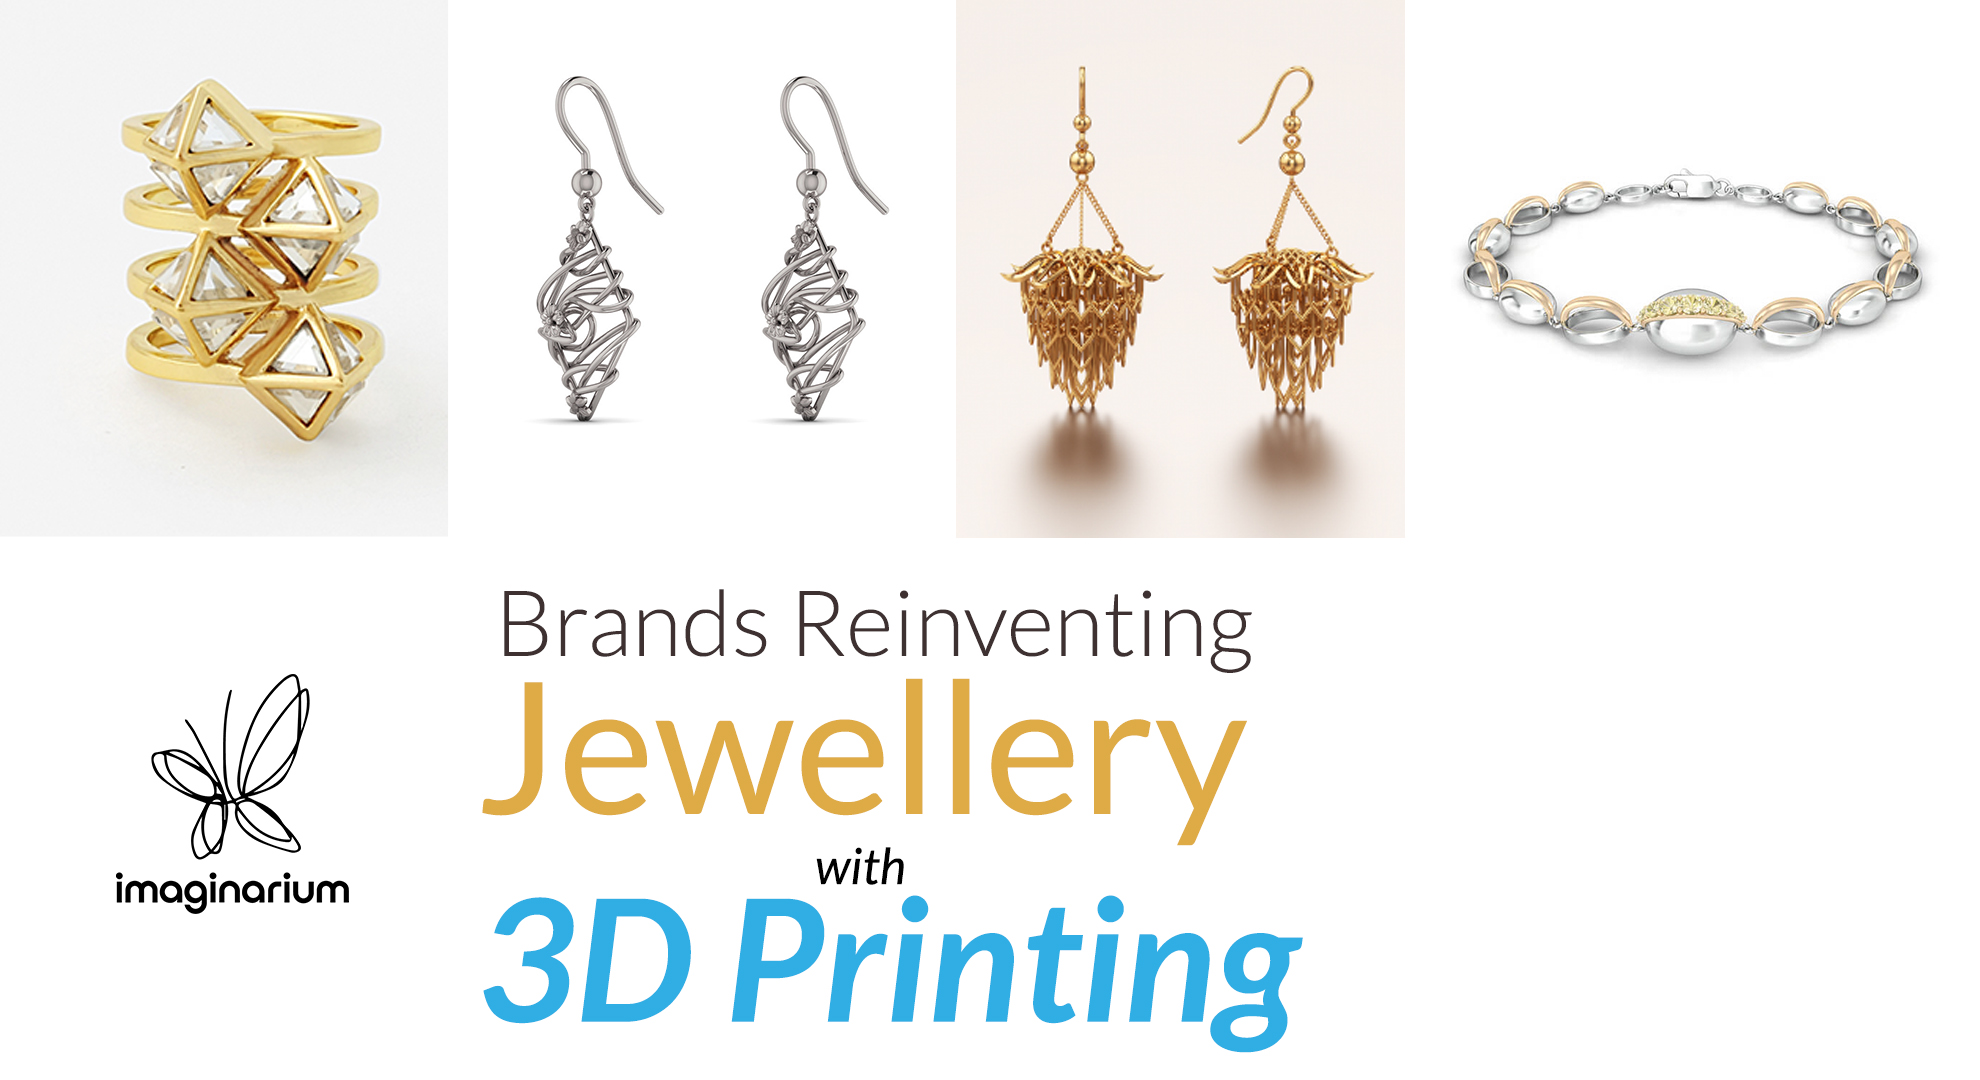 3D printing jewellery brands india